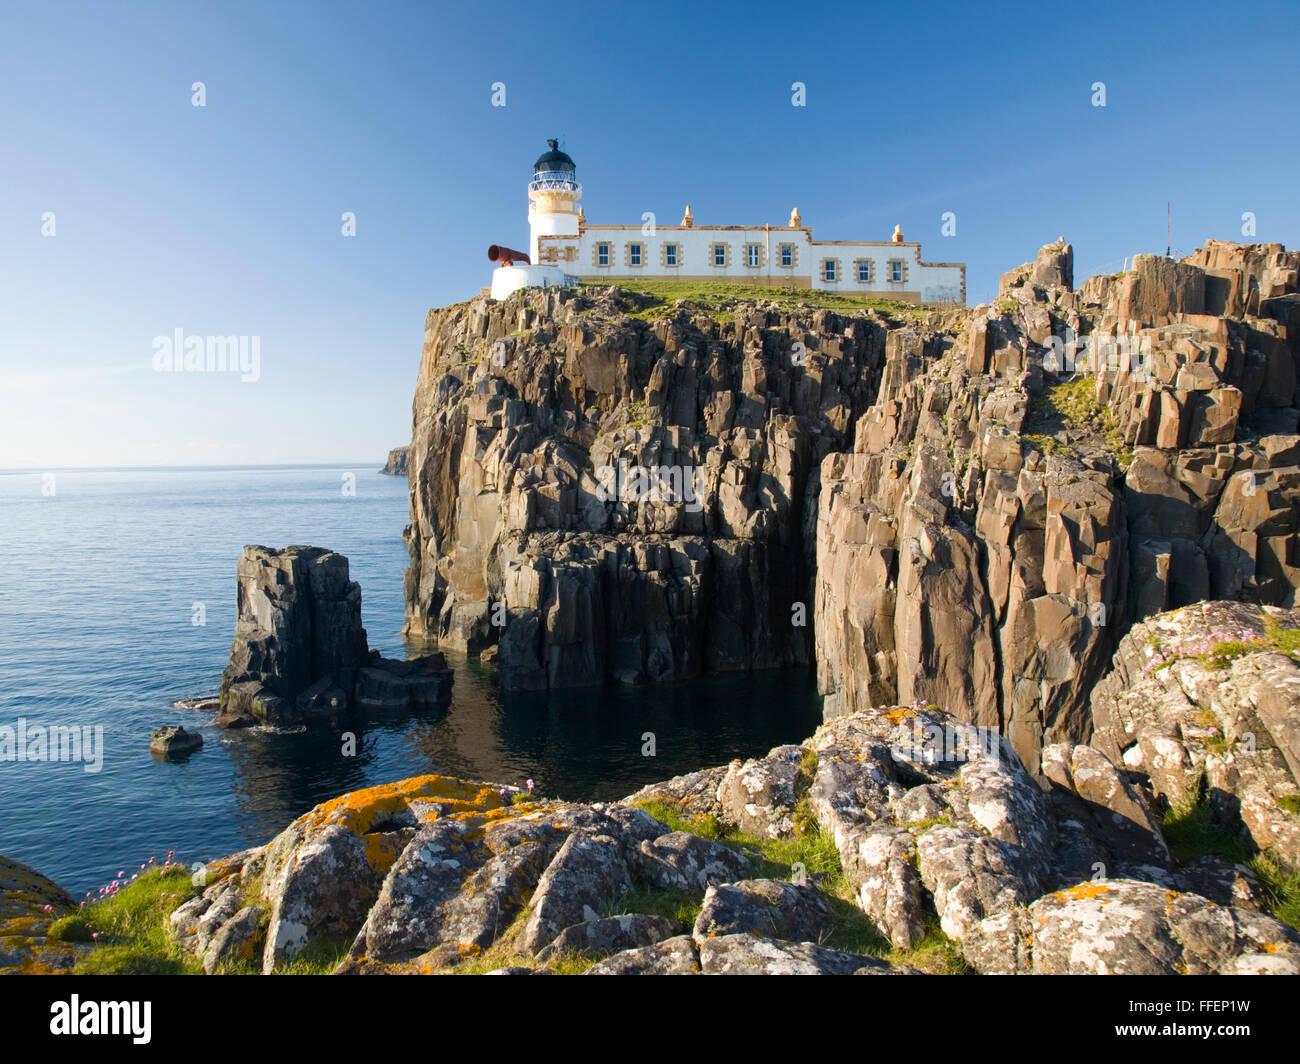 Glendale, Isle of Skye, Highland, Scotland. View from rocky headland to the clifftop lighthouse at Neist Point. Stock Photo